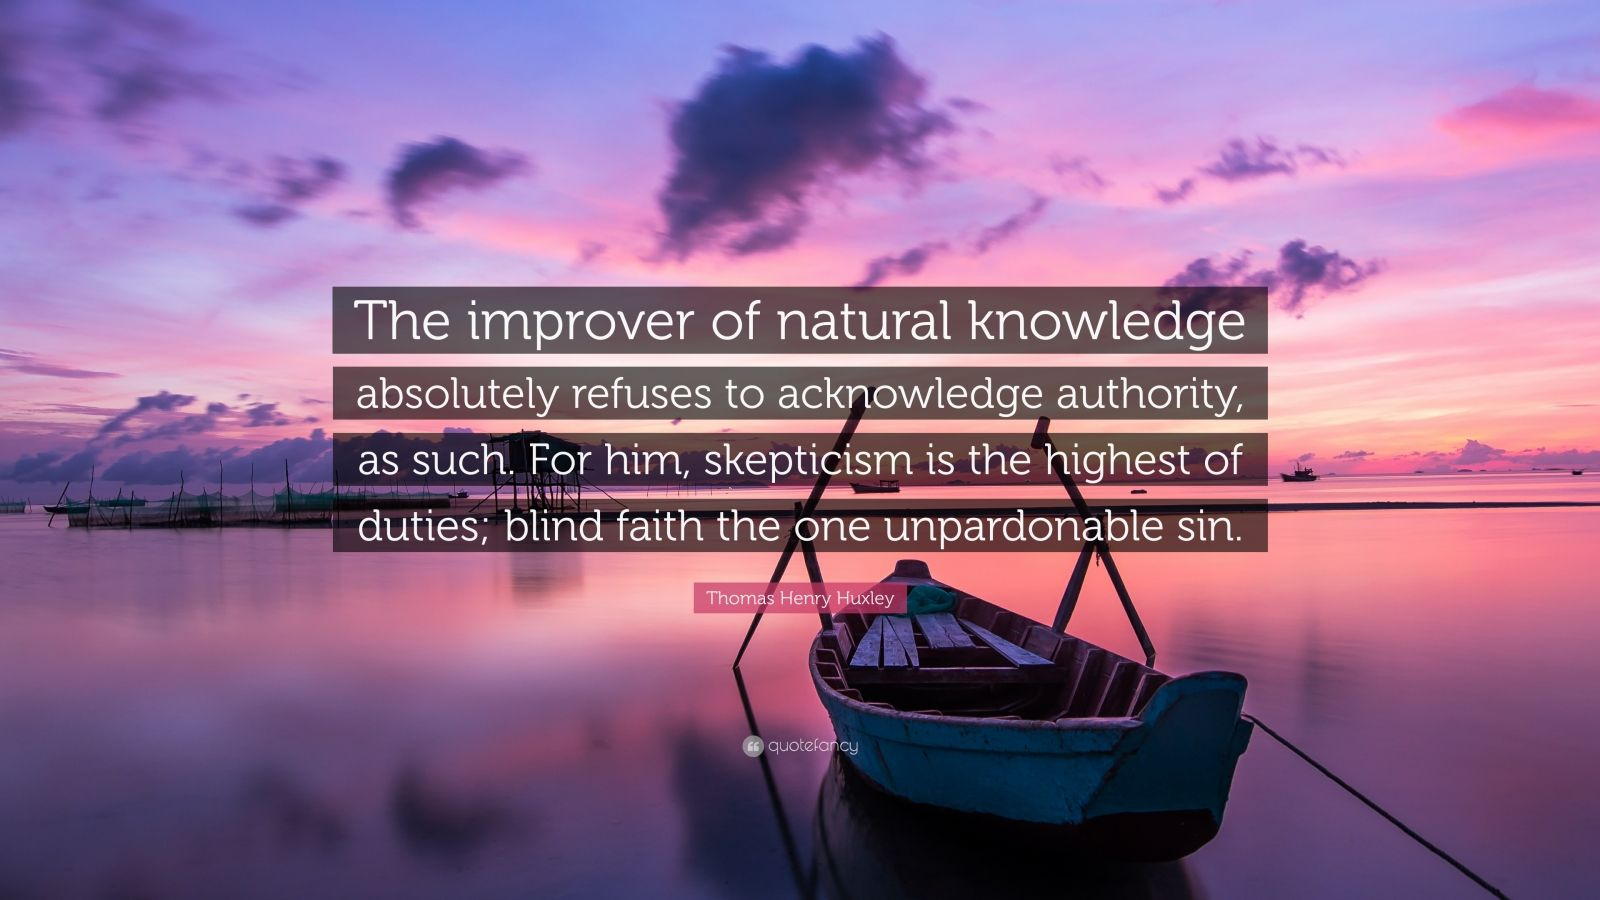 """Thomas Henry Huxley Quote: """"The improver of natural knowledge absolutely refuses to acknowledge authority, as such. For him, skepticism is the highest of duties; blind faith the one unpardonable sin."""""""